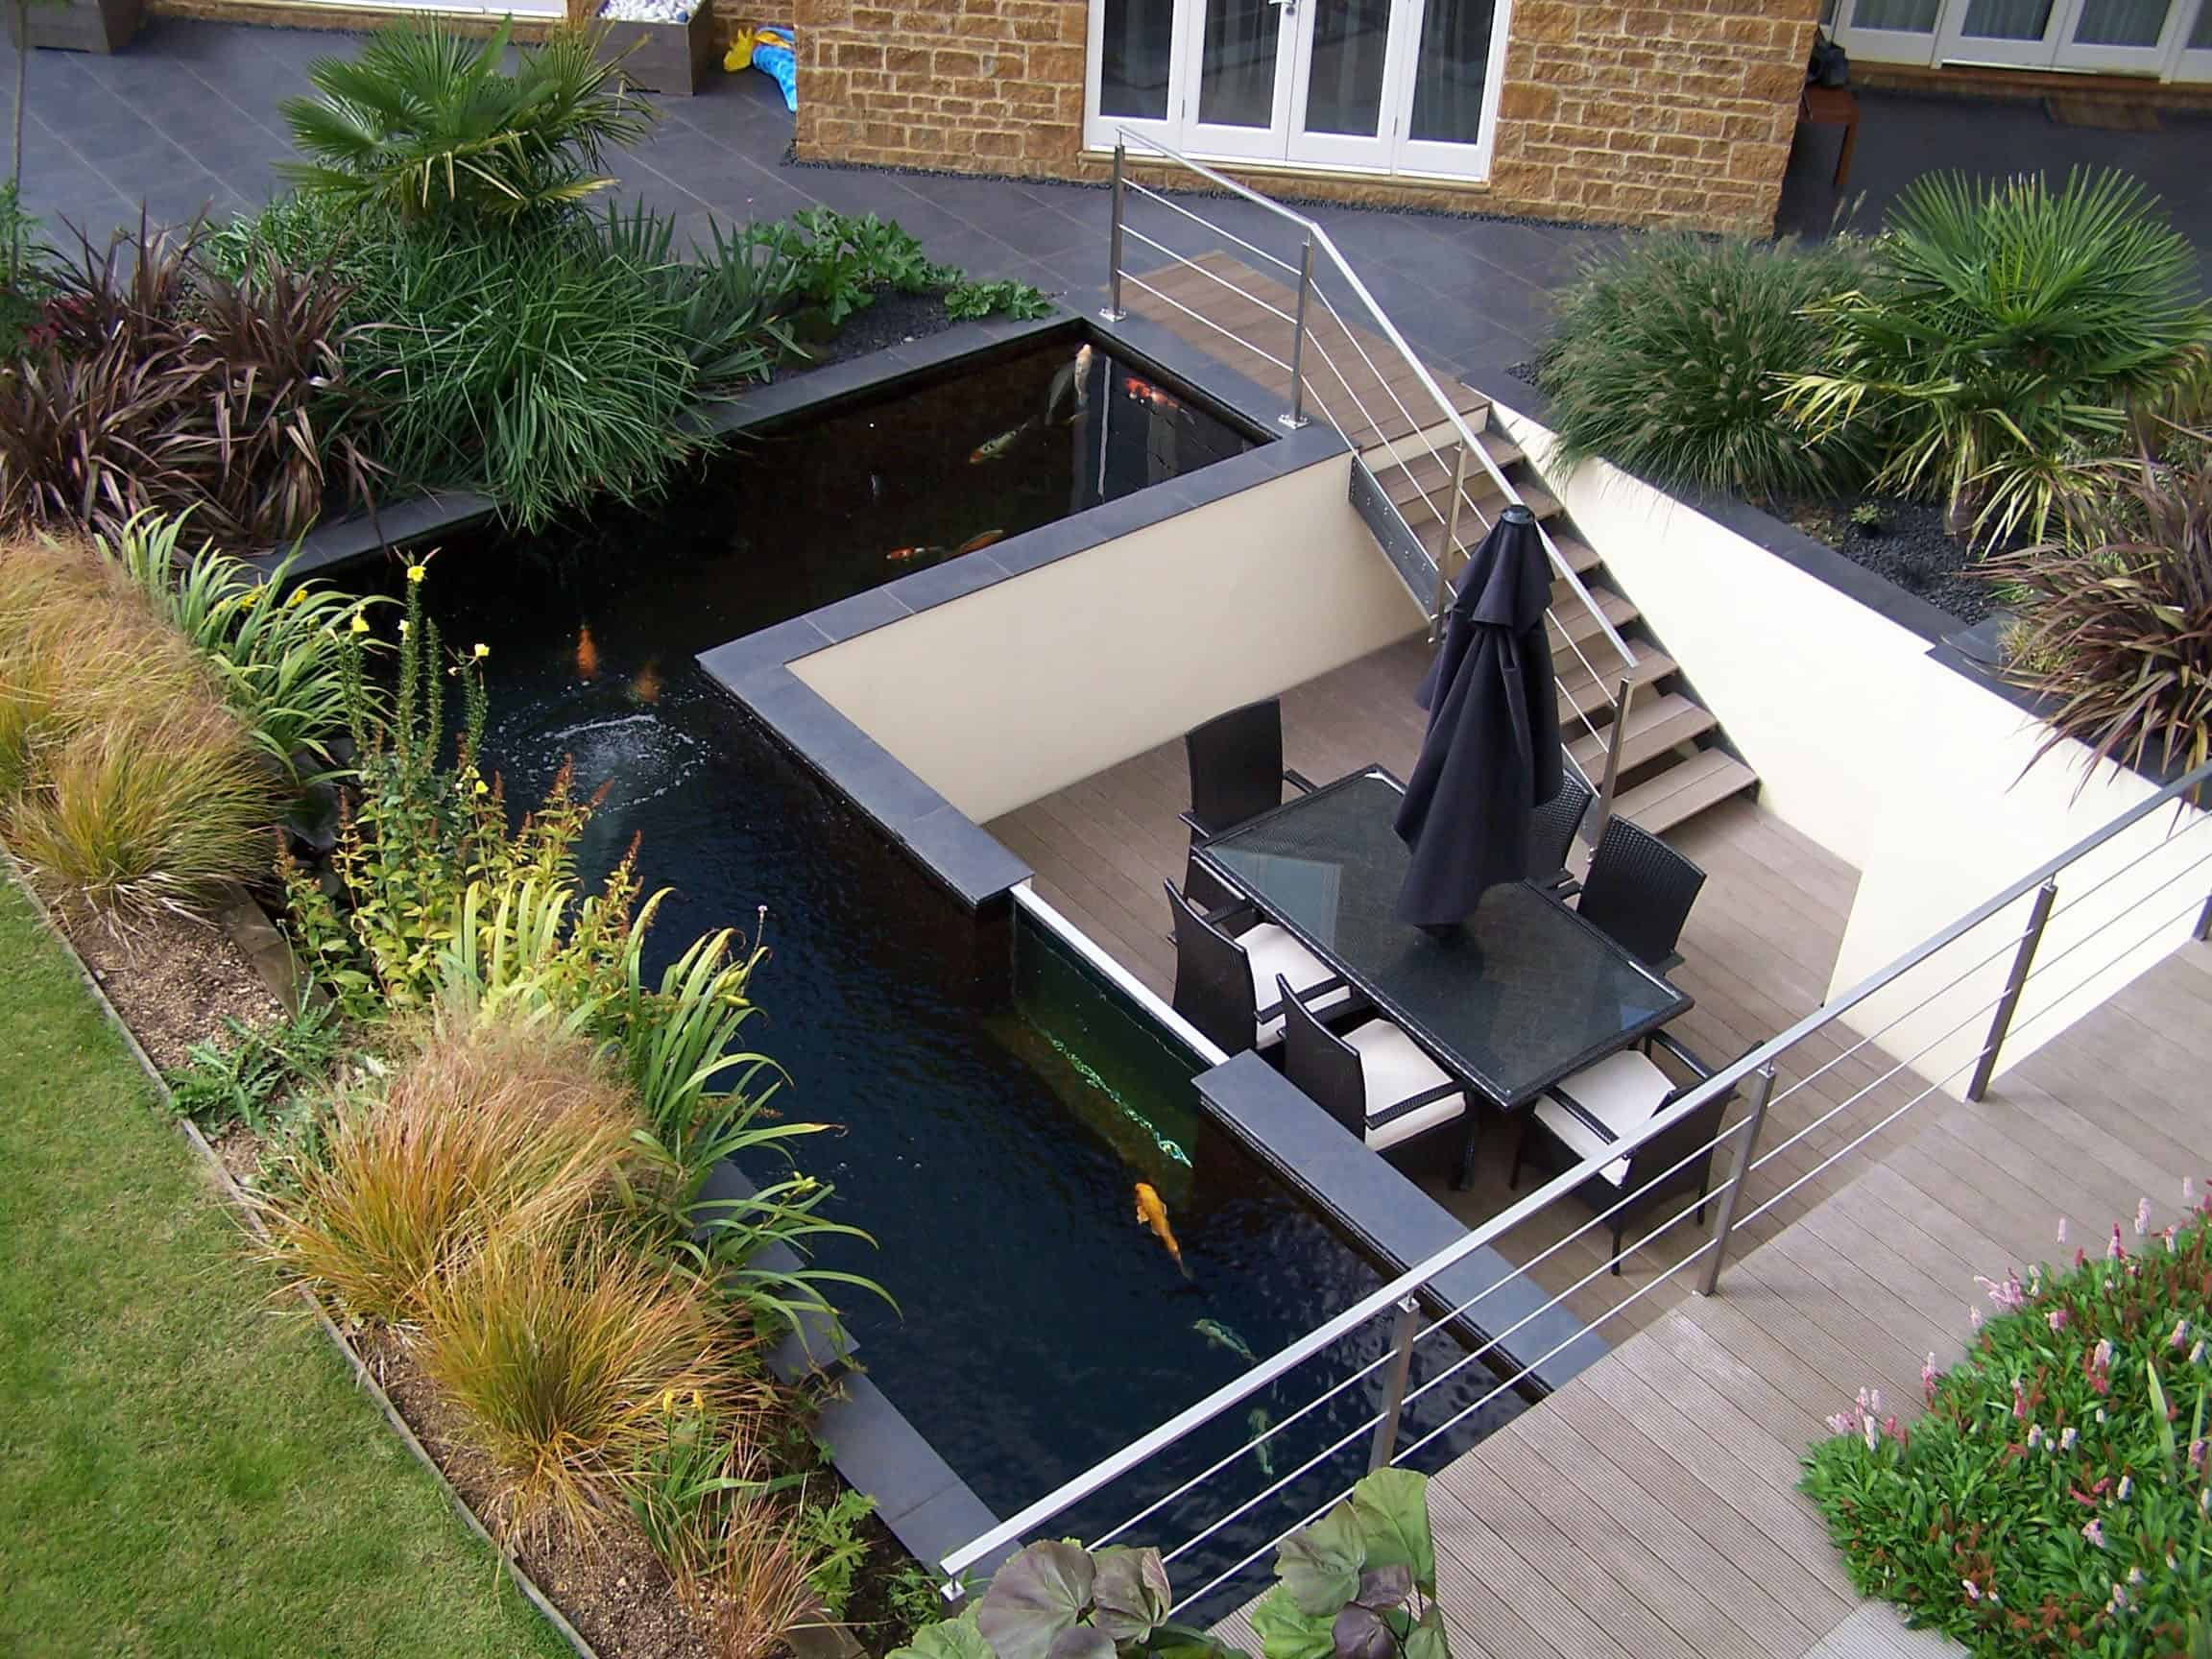 35 Sublime Koi Pond Designs and Water Garden Ideas for ... on Koi Ponds Ideas id=47916